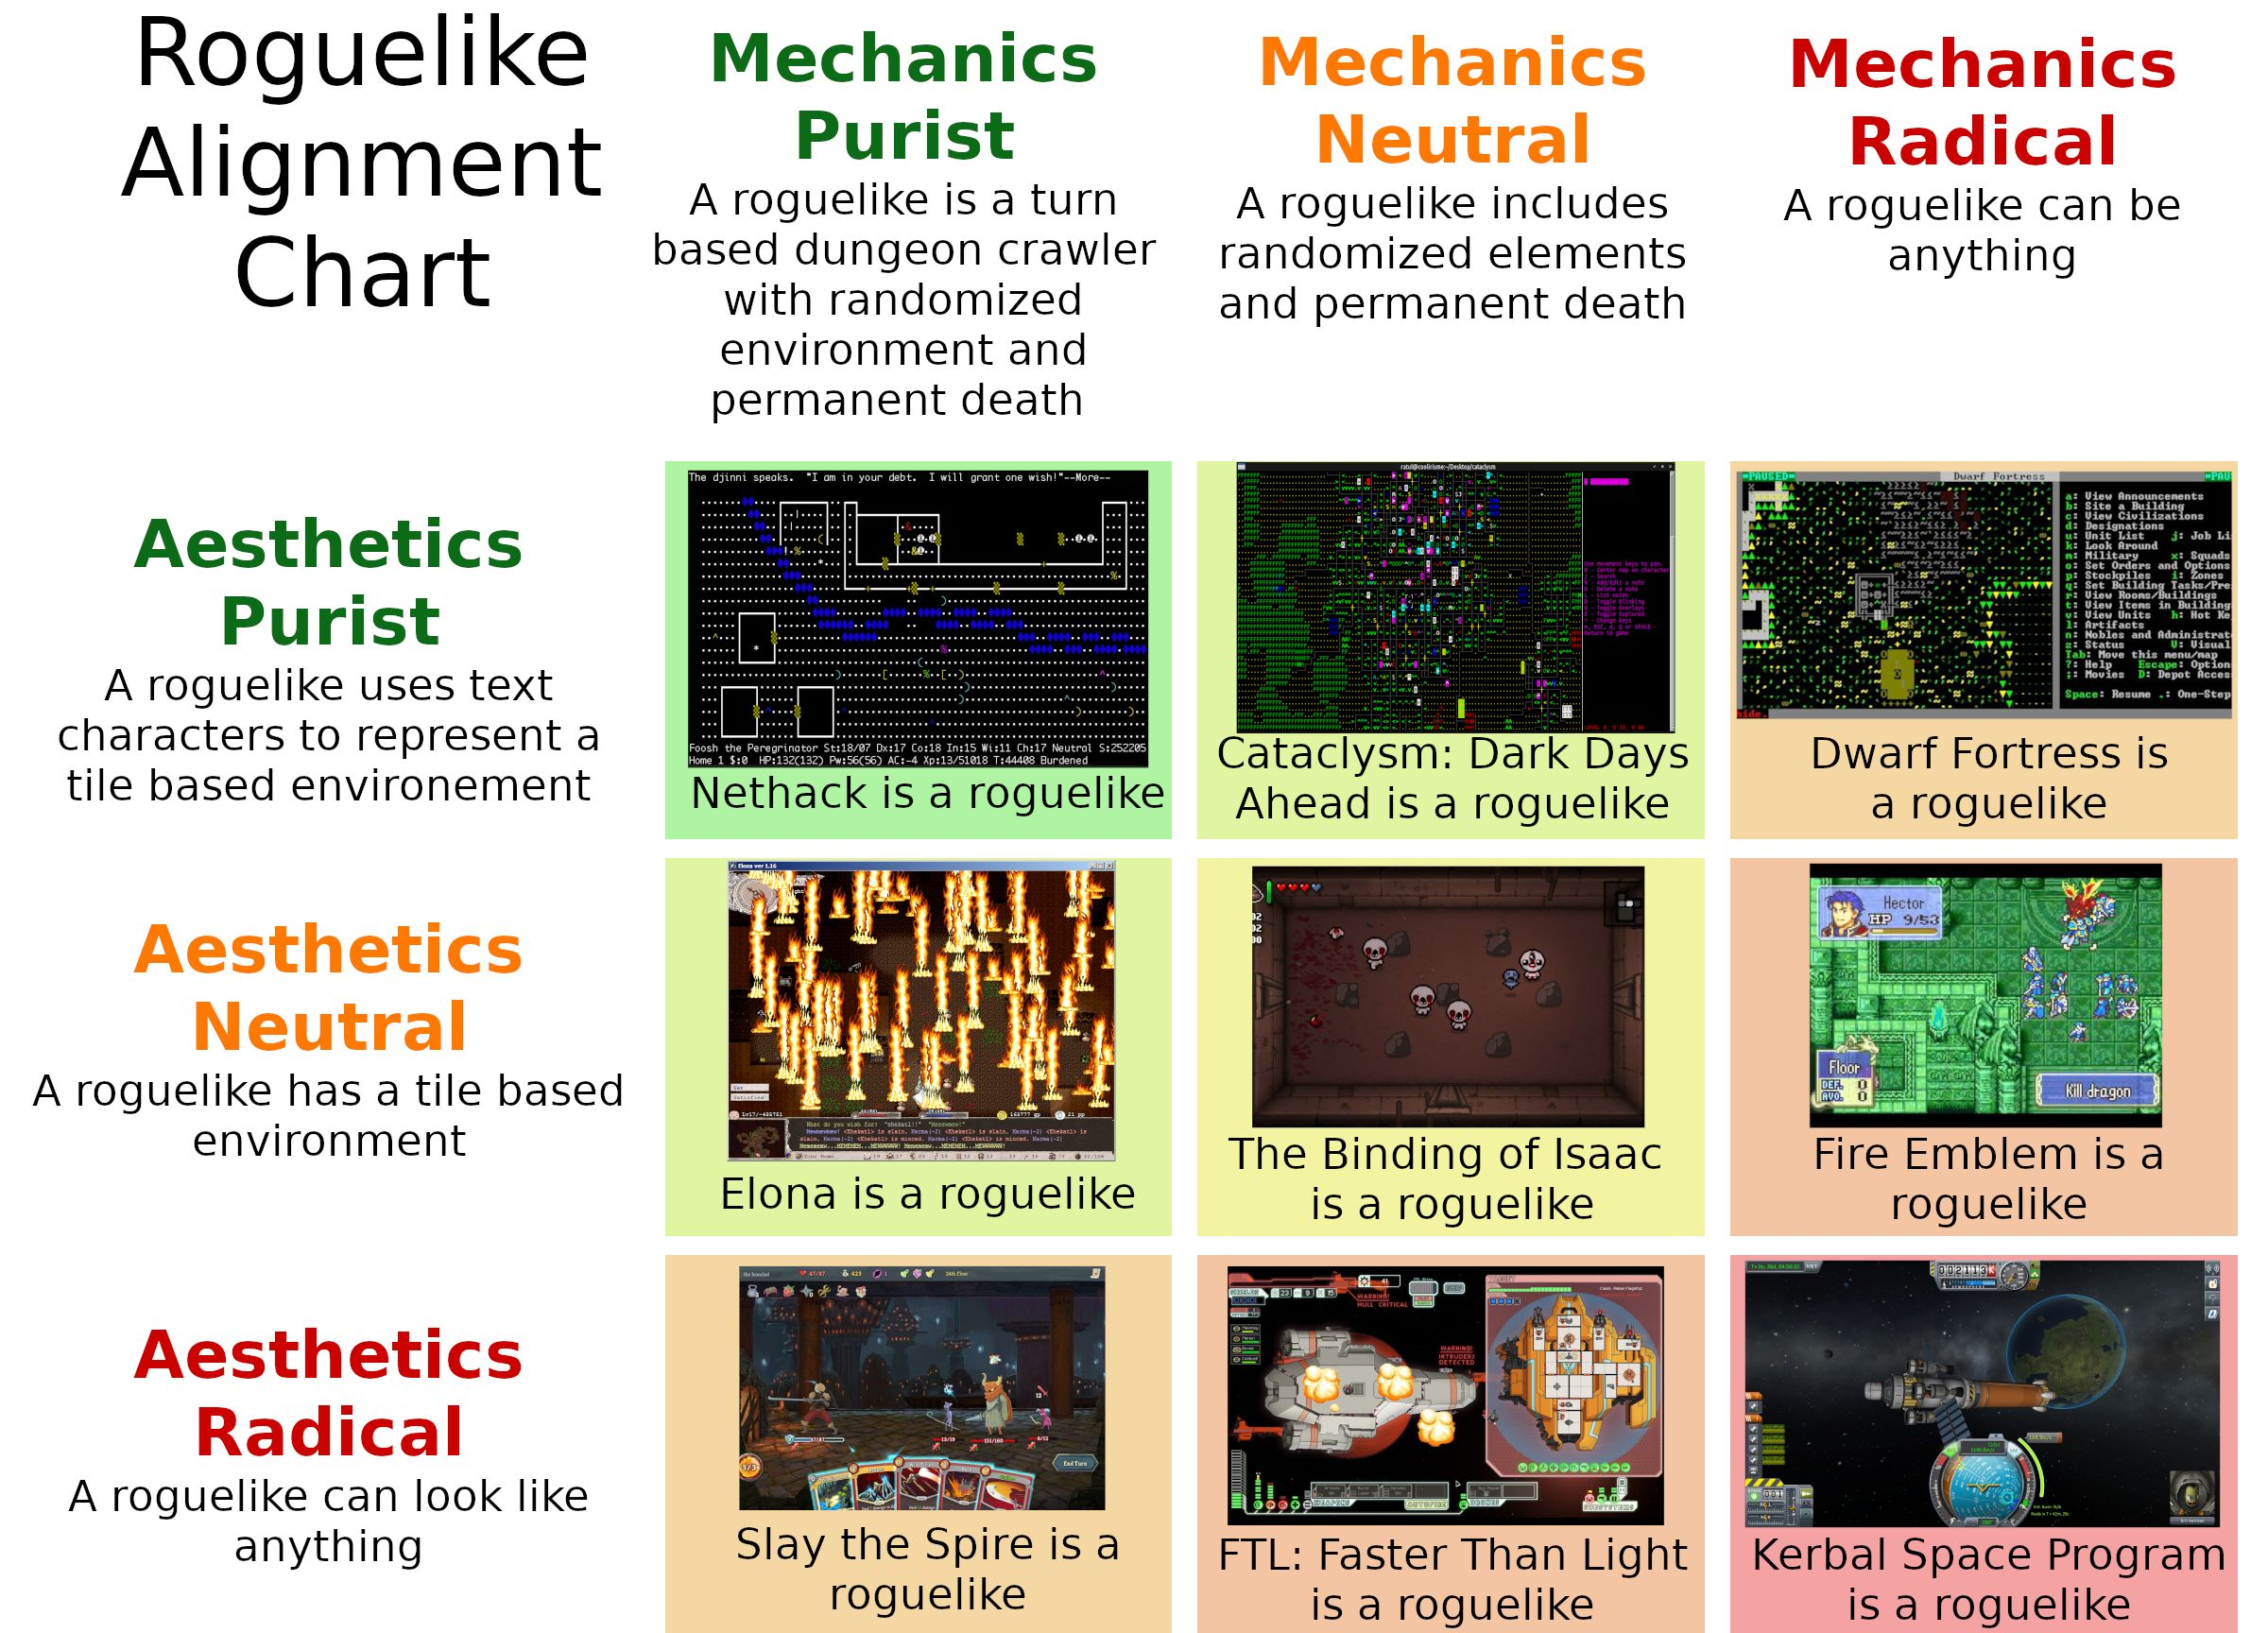 The Roguelike Alignment Chart